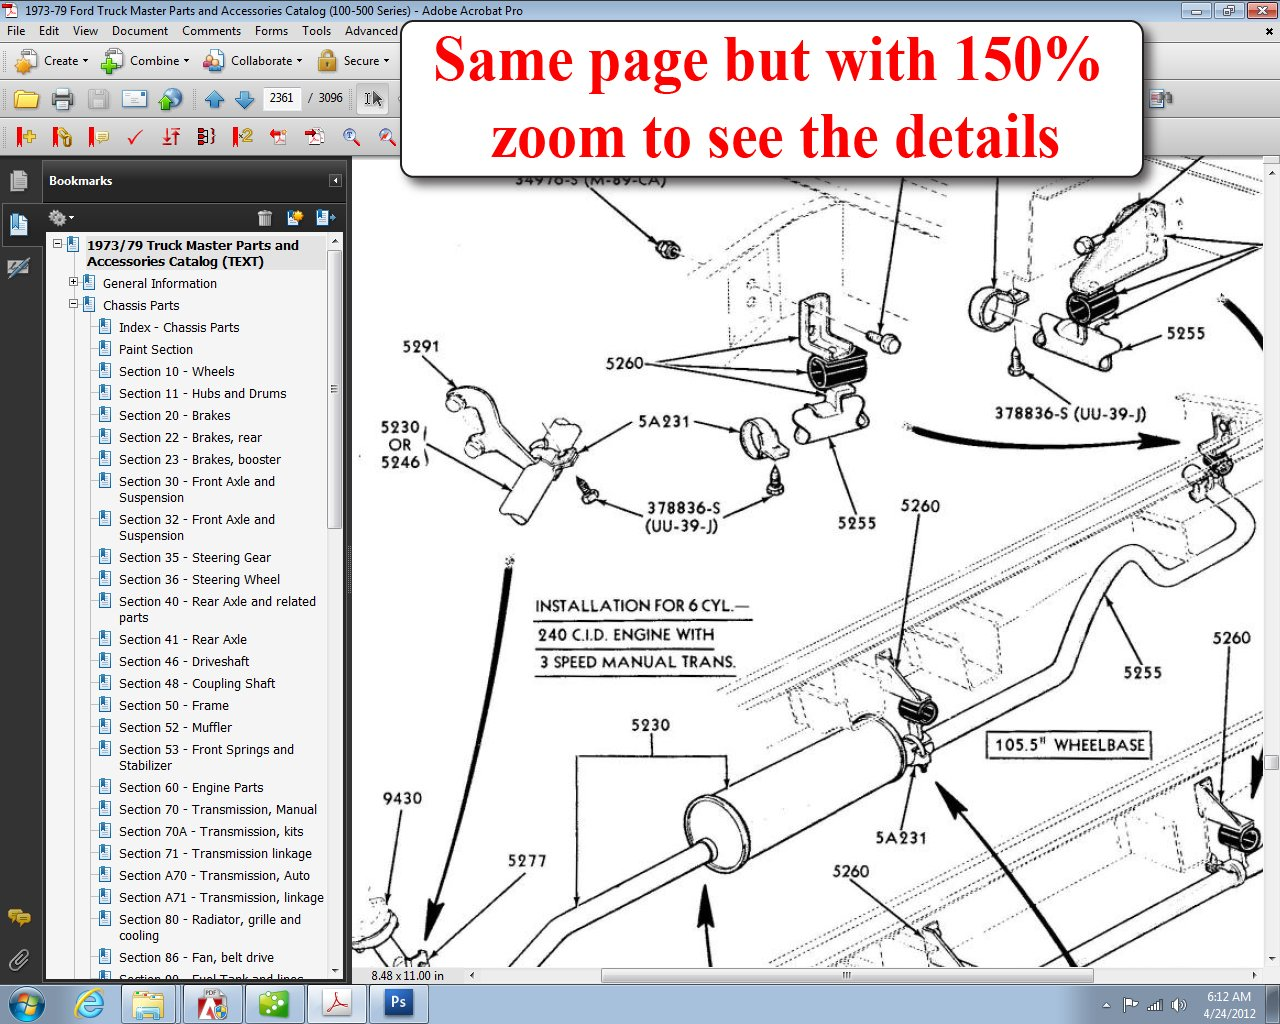 wiring diagram for 79 ford truck yb 4573  ford parts catalog with diagrams wiring diagram  parts catalog with diagrams wiring diagram